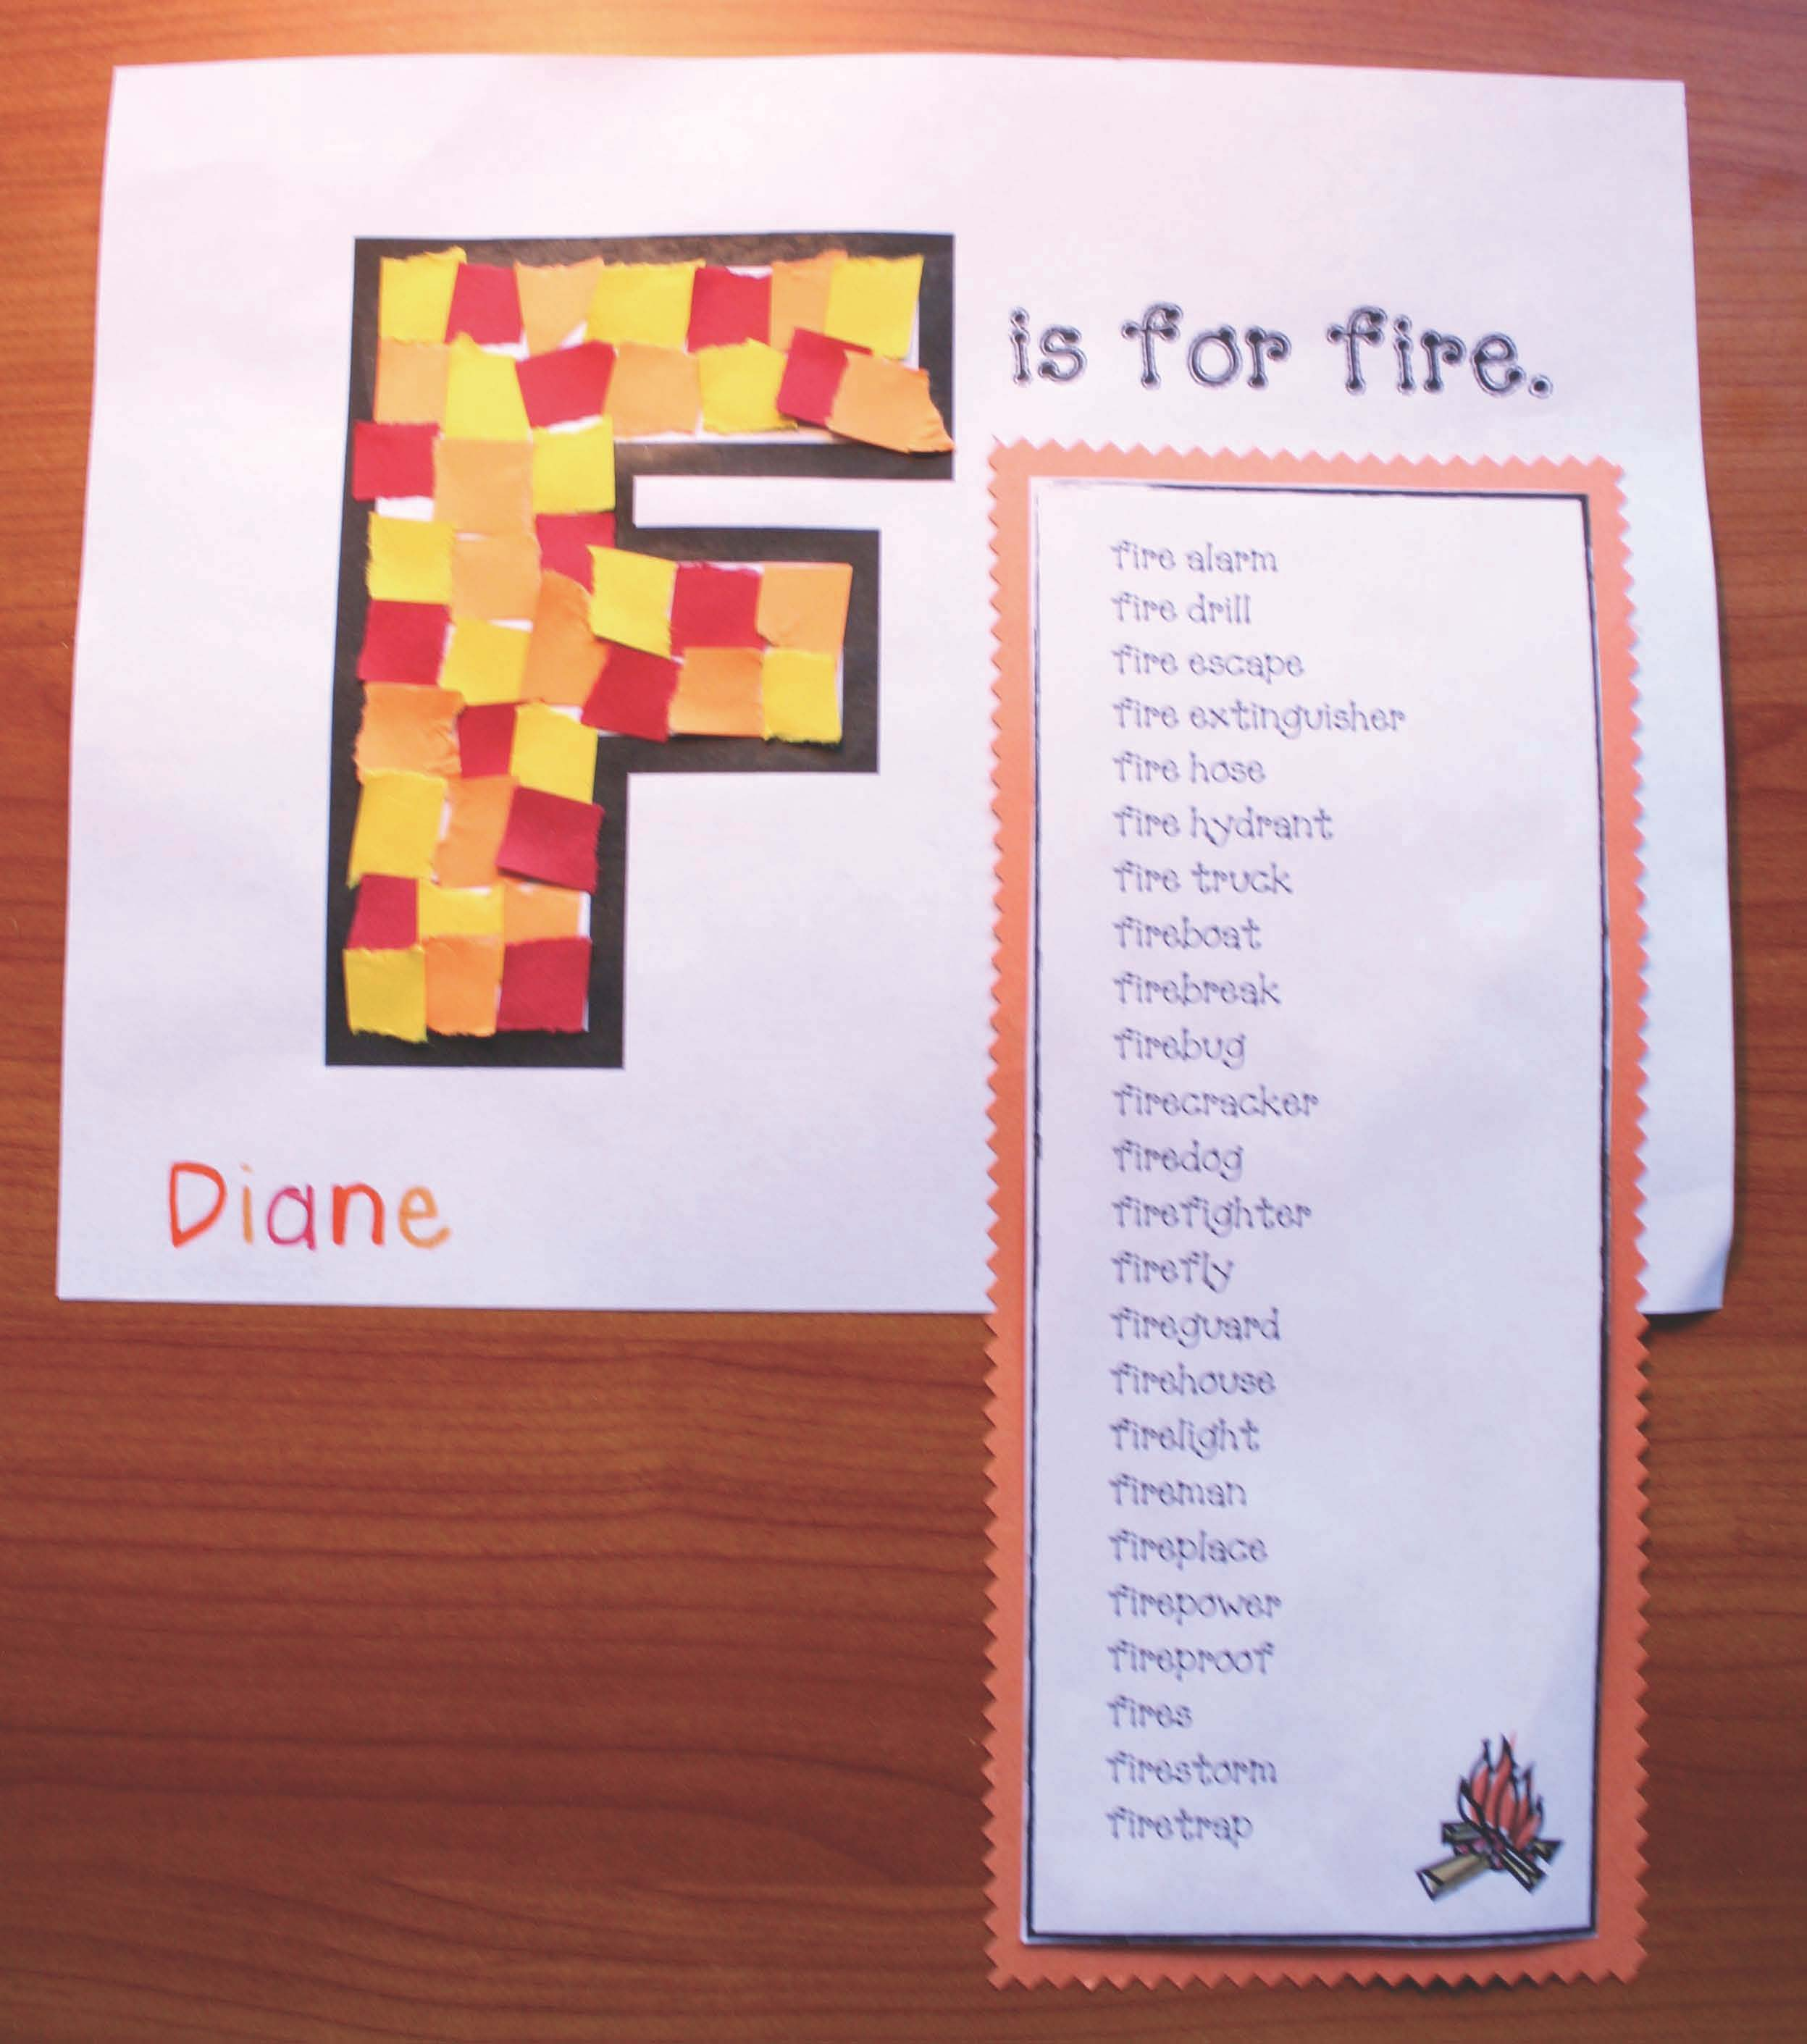 fire safety crafts, fire safety activities, fire safety vocabulary words, words that begin with fire, fire safety songs, fire safety posters, 55 fire safety books, fire safety writing prompts, stop drop and roll activities,